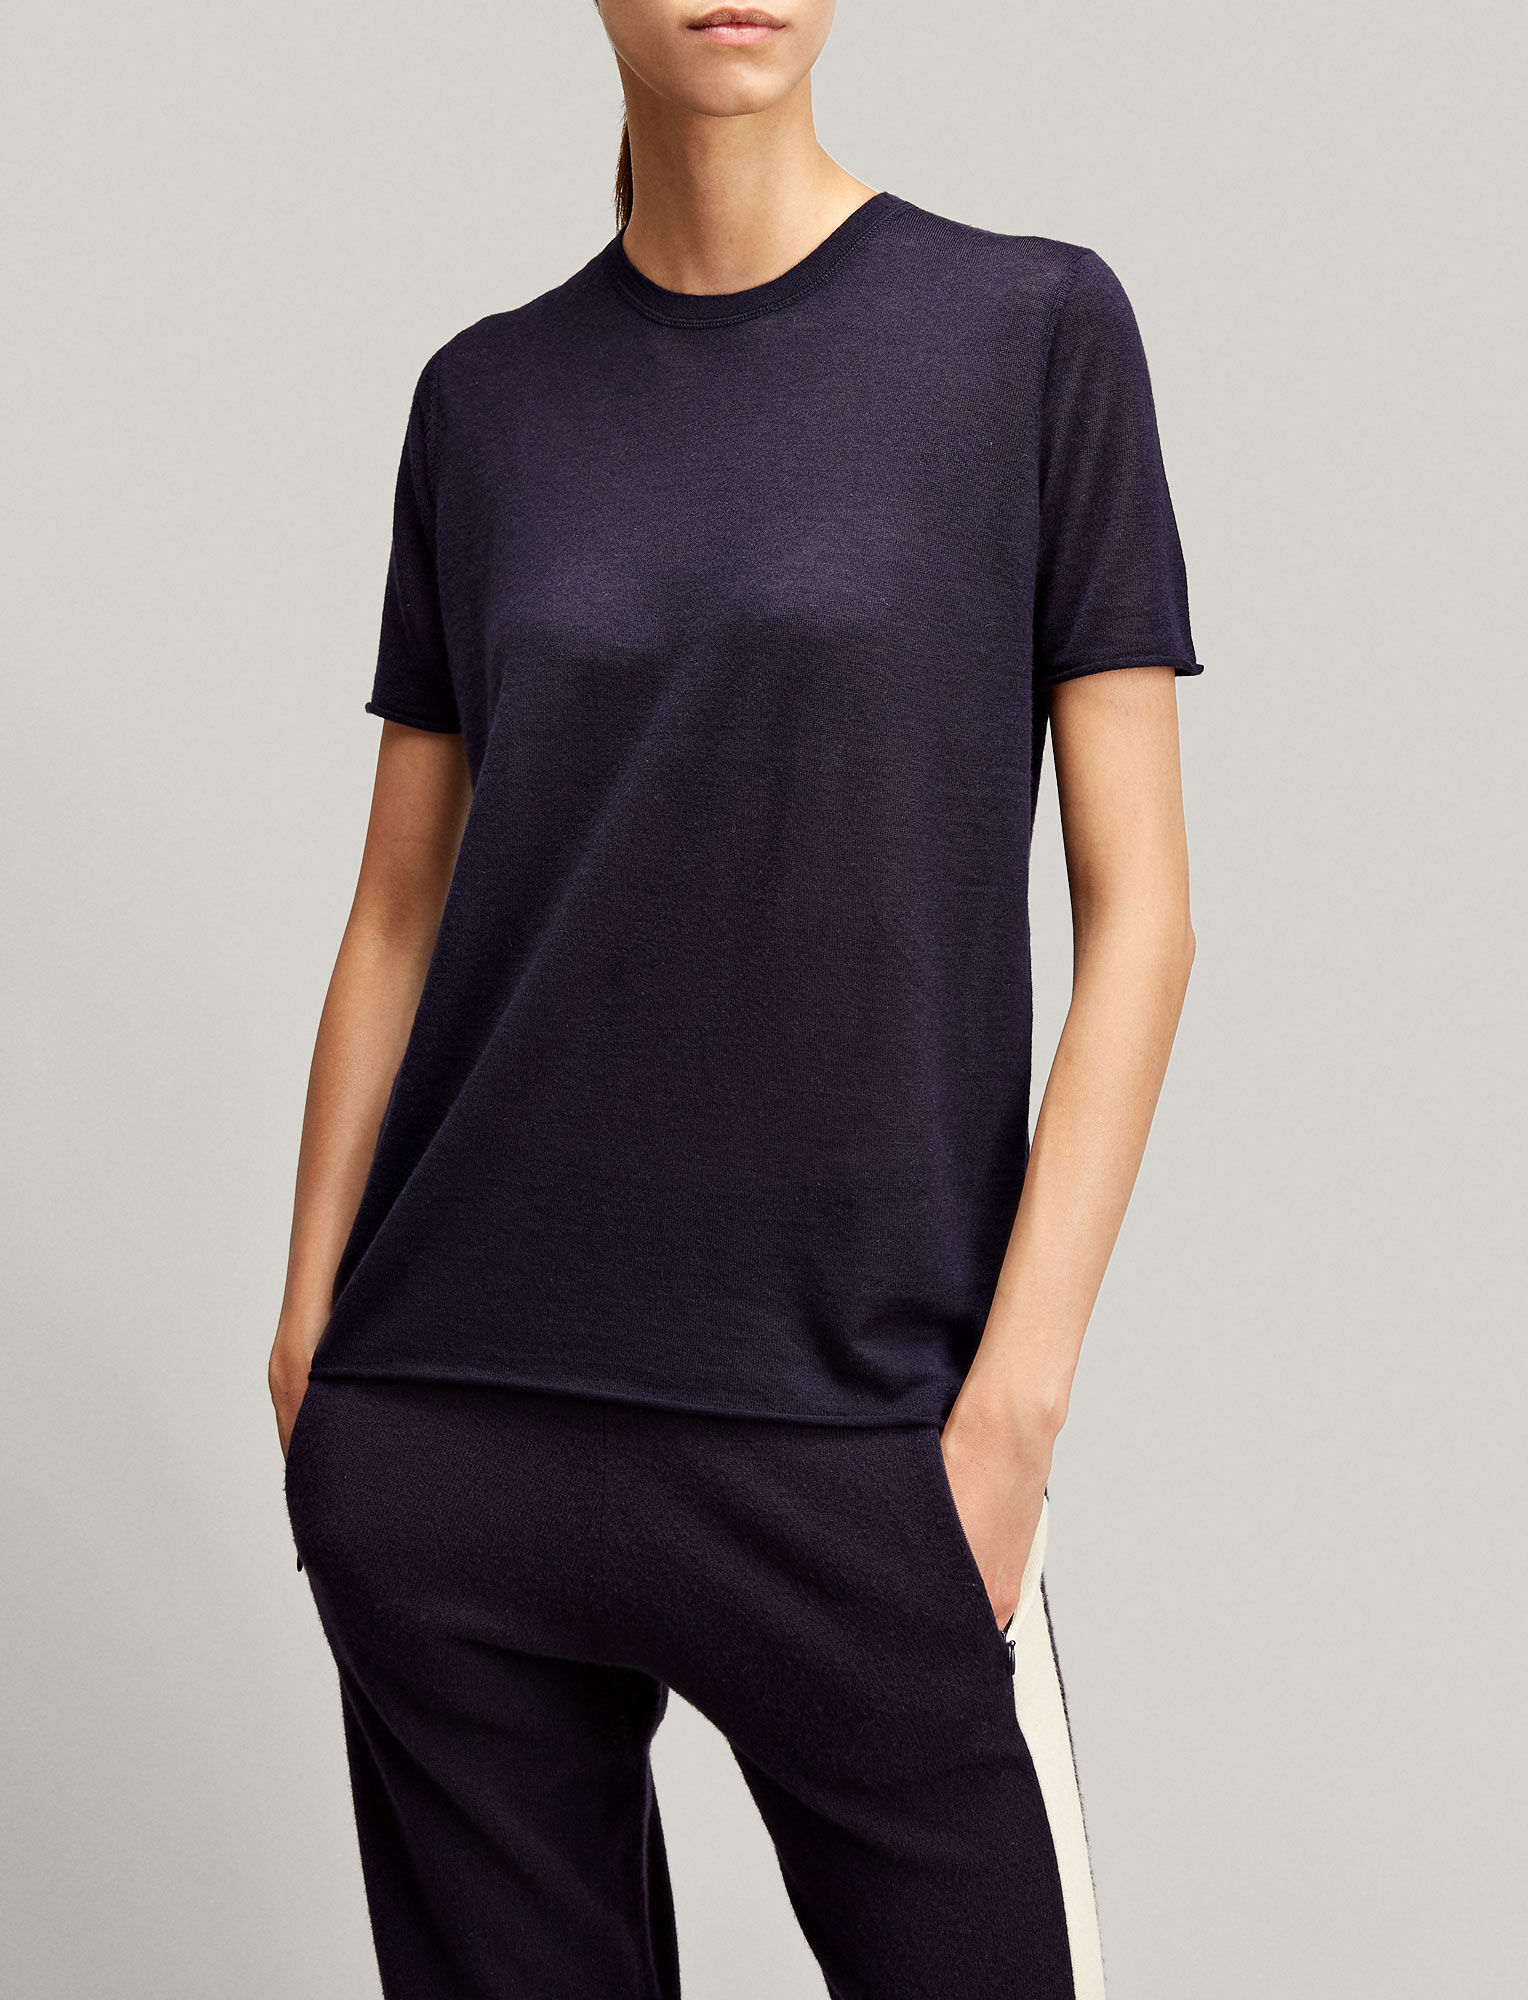 Joseph, Cashair Knit Tee, in NAVY